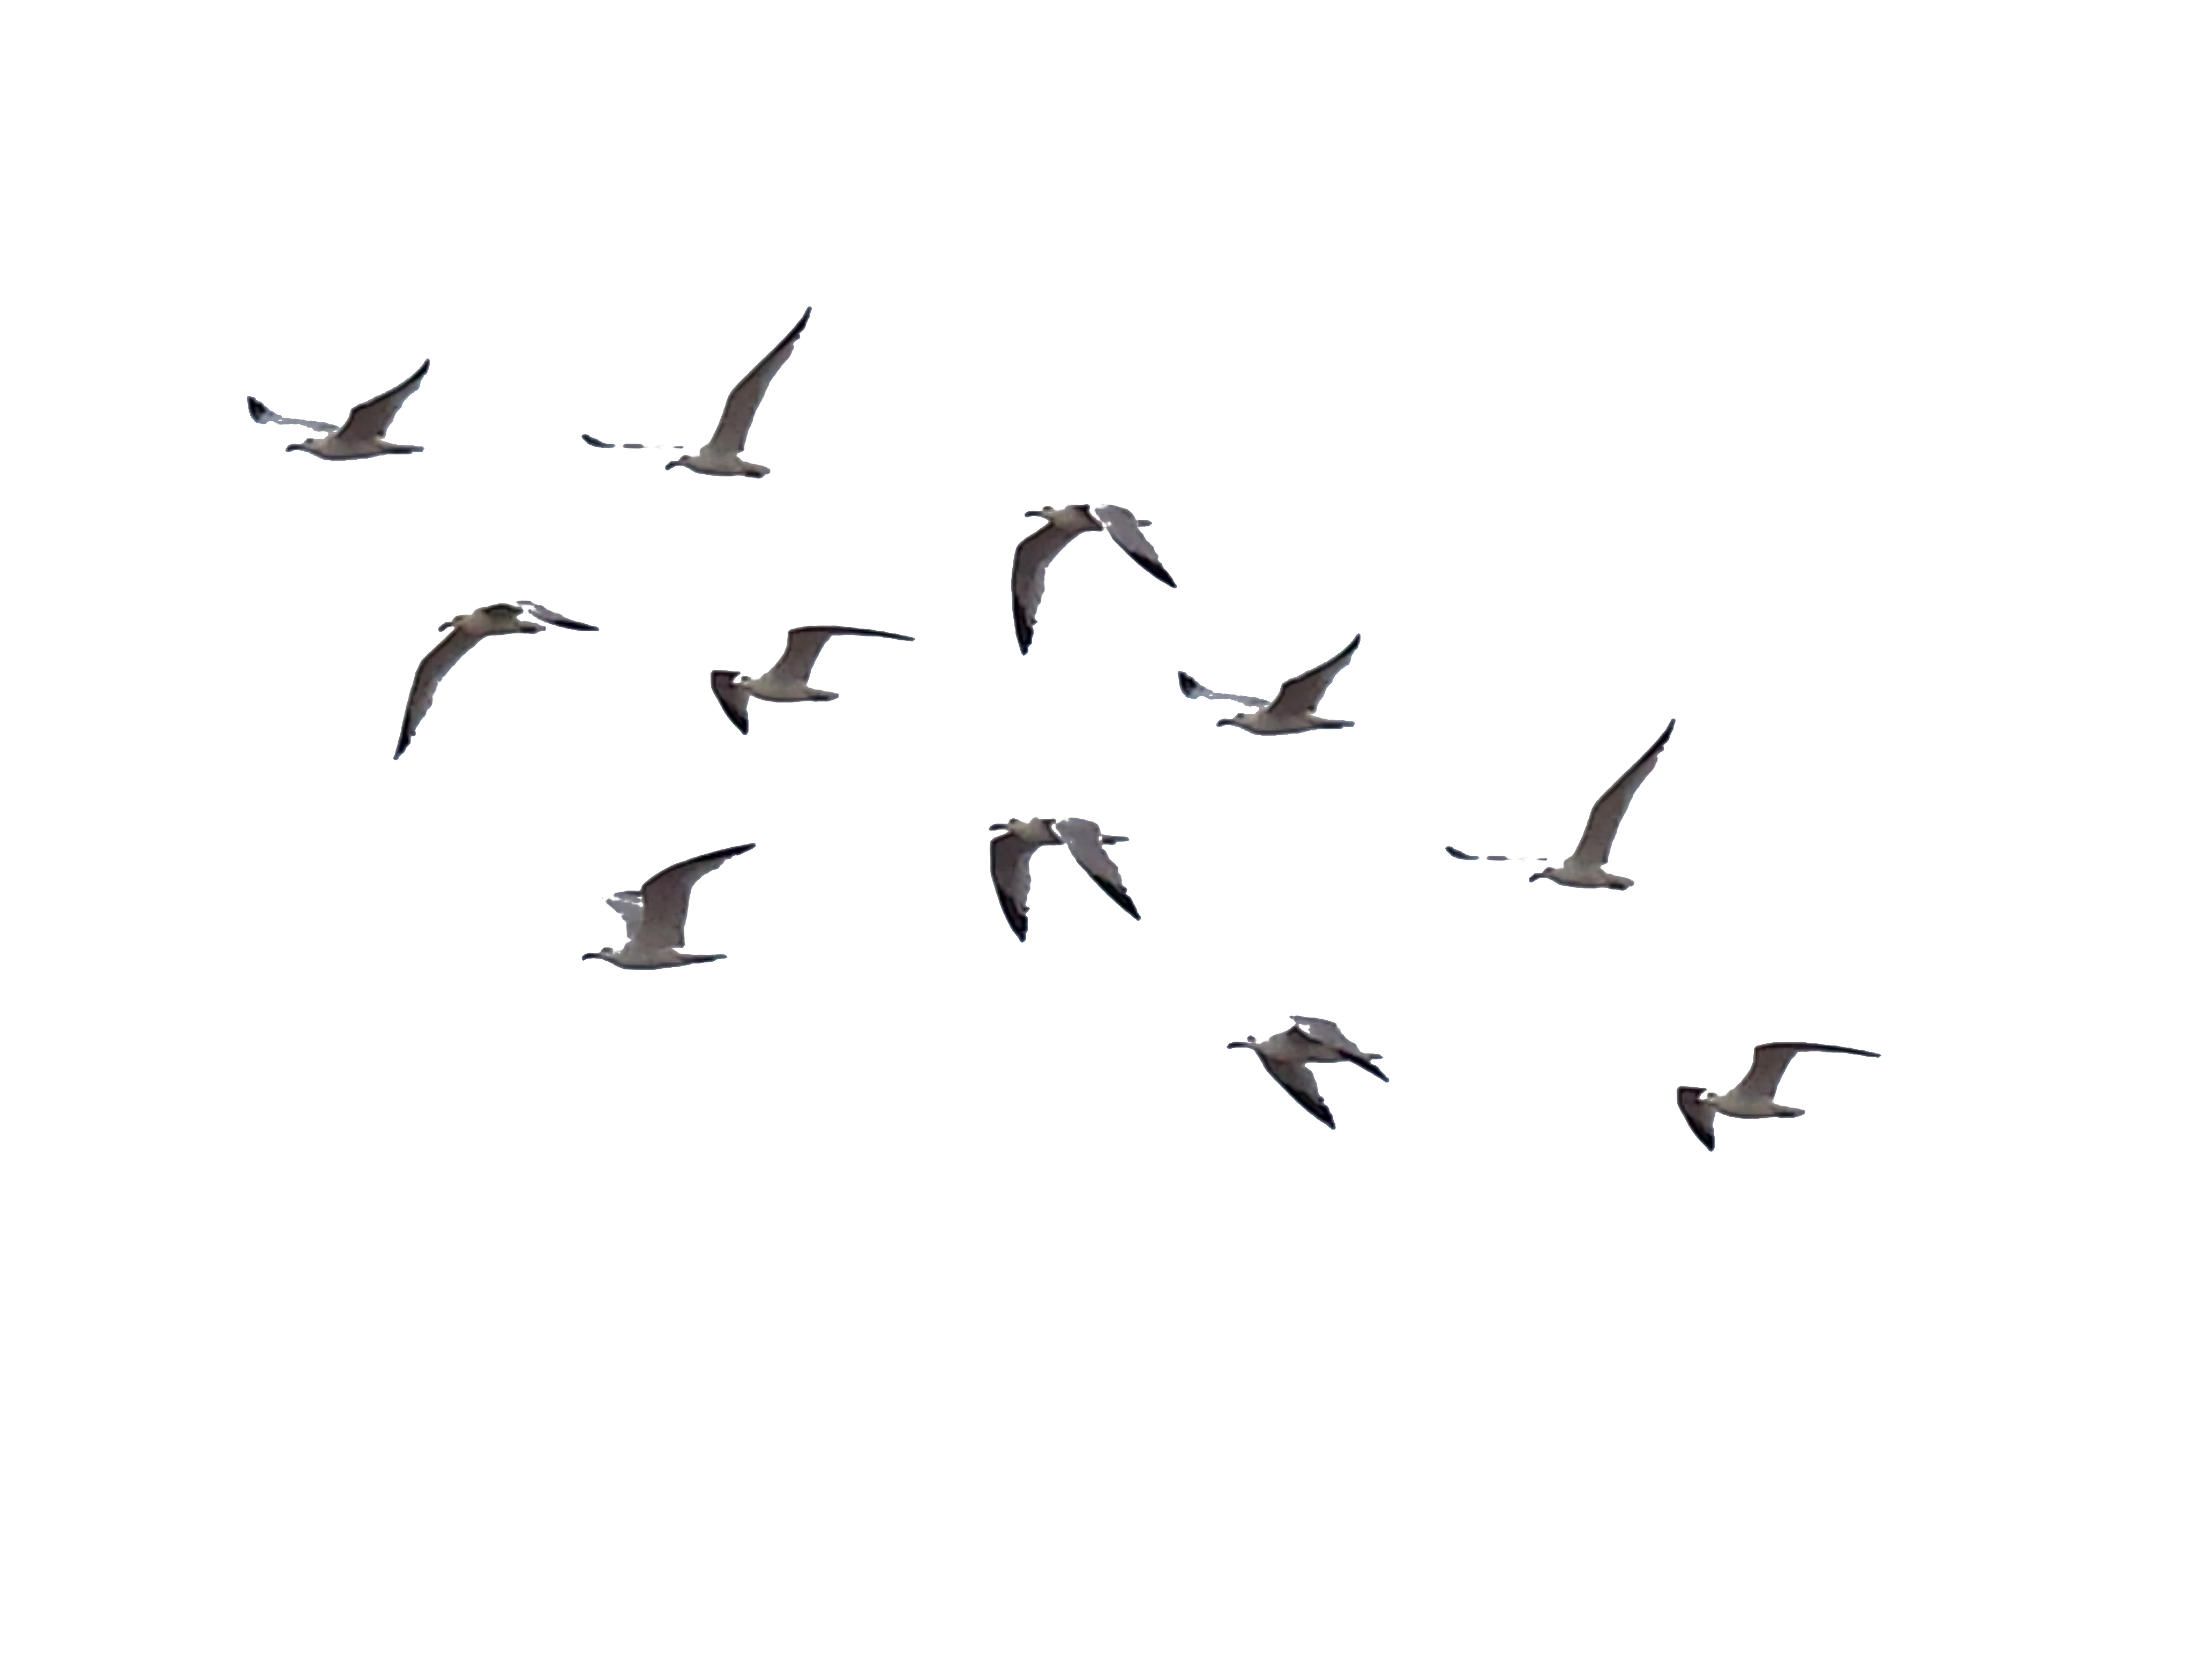 White birds png. Bird transparent images all